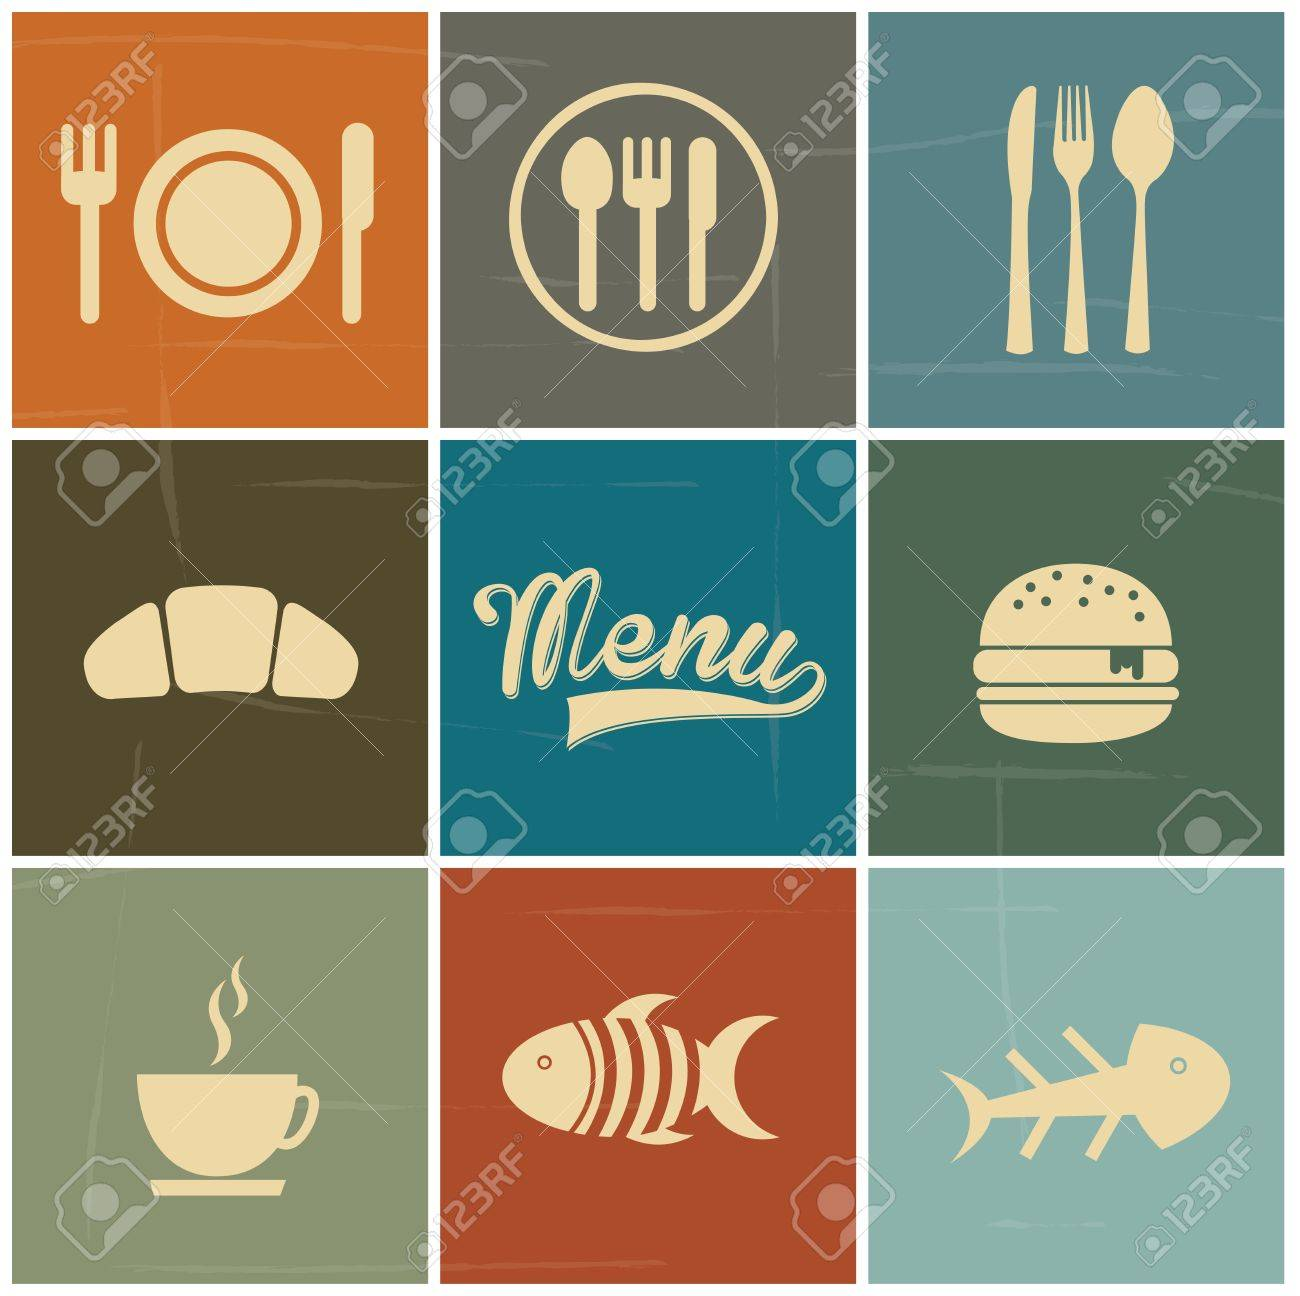 menu icons over colorful background vector illustration Stock Vector - 21371928